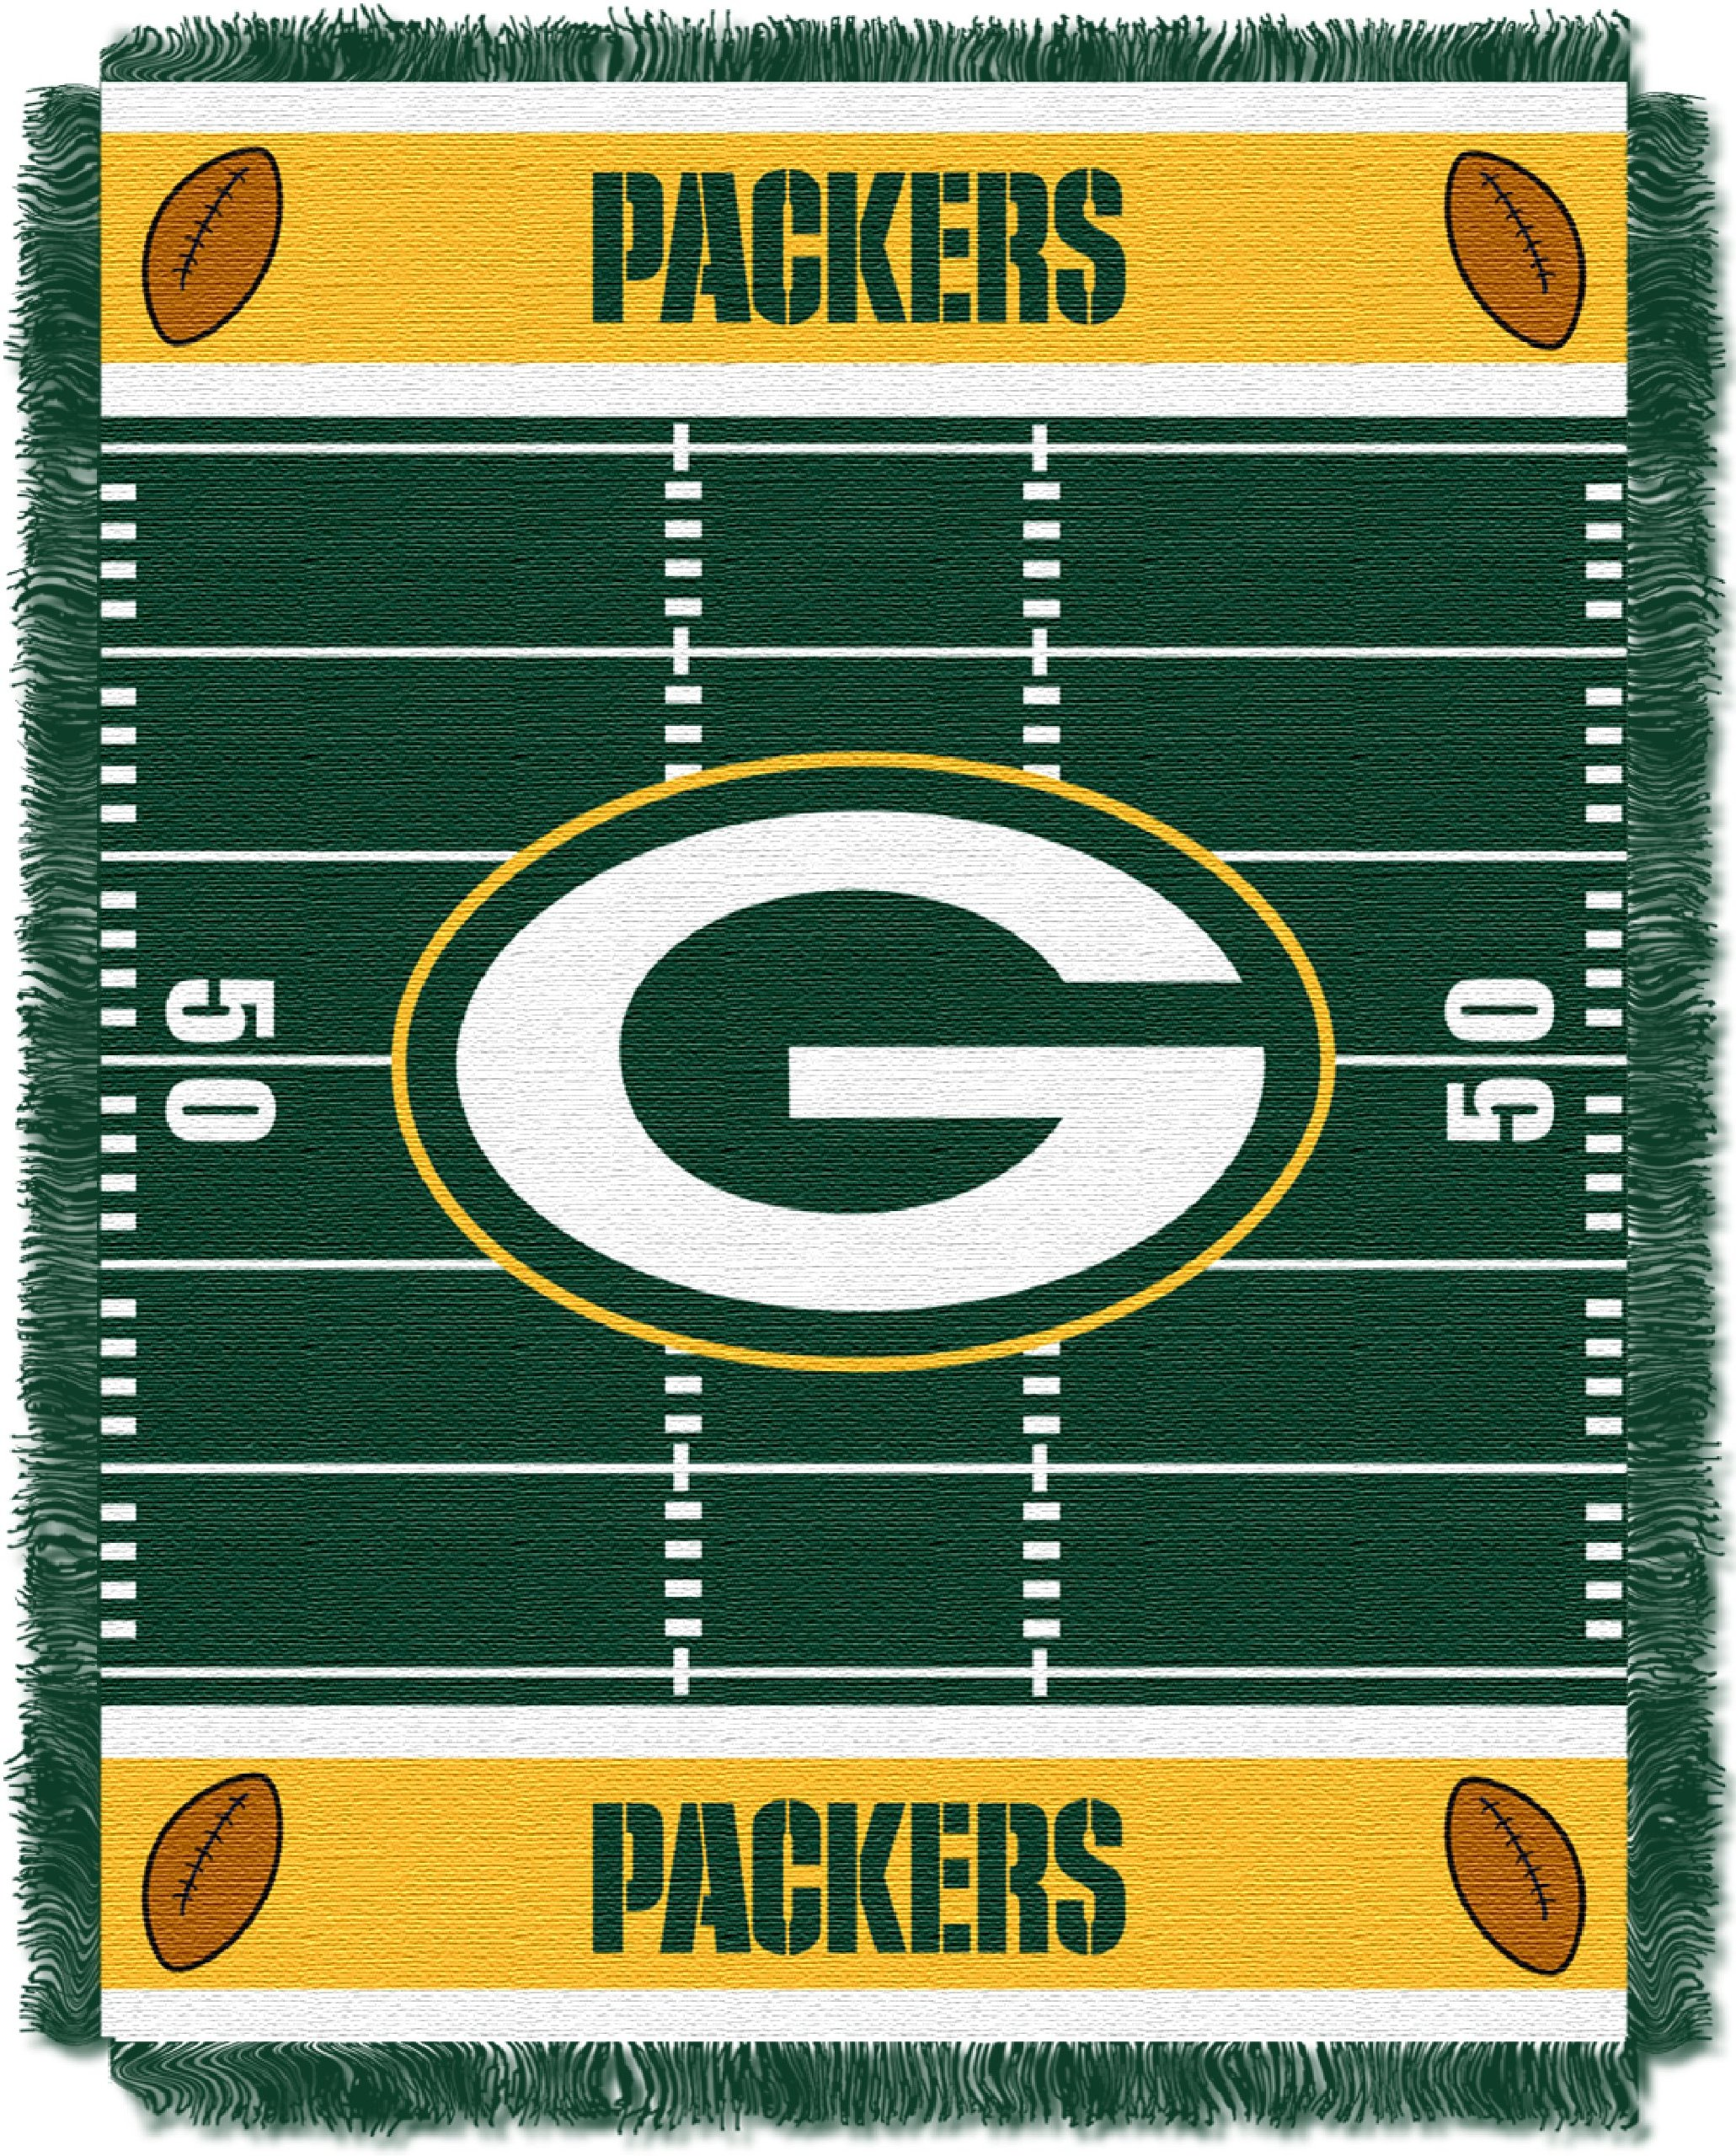 The Northwest Company Officially Licensed NFL Green Bay Packers Field Bear Woven Jacquard Baby Throw Blanket, 36'' x 46'', Multi Color by The Northwest Company